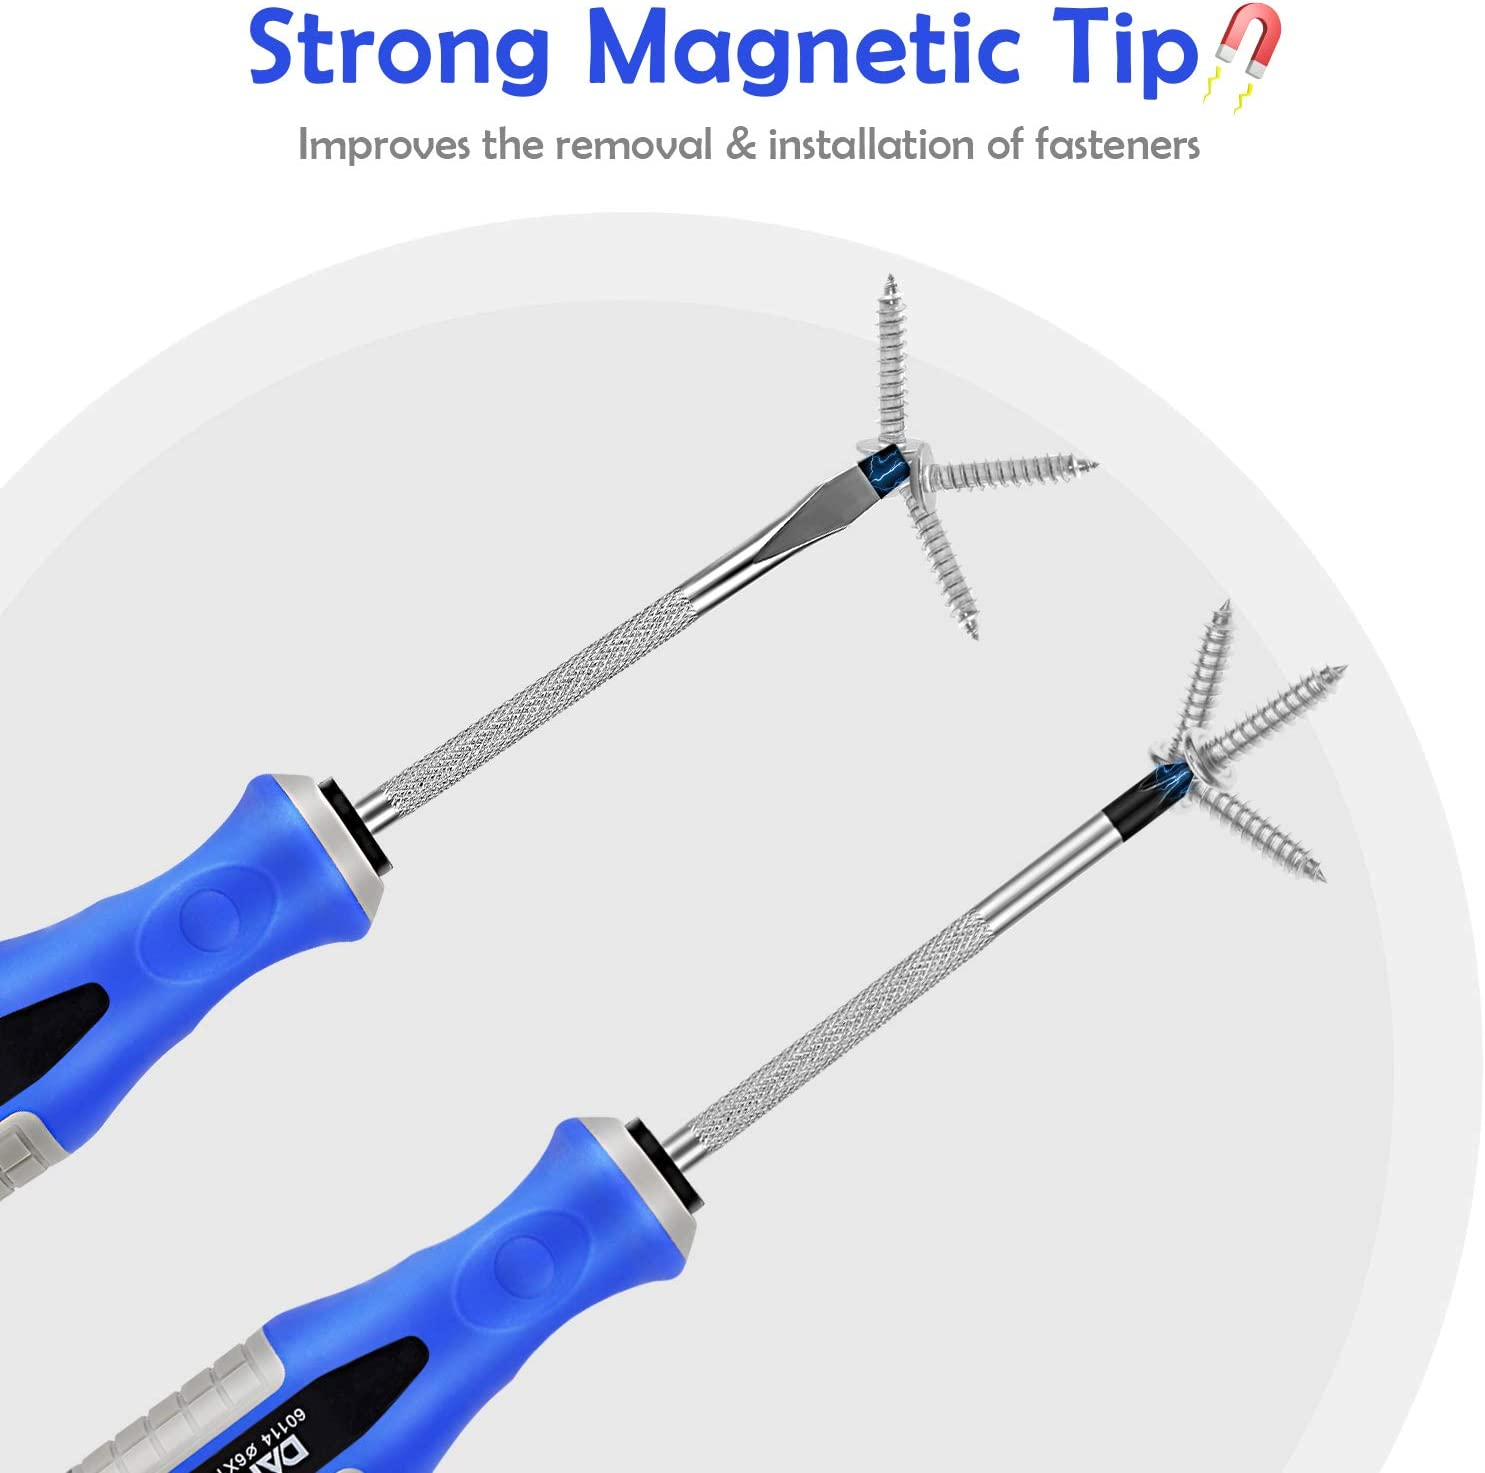 AbeTammy 2-Piece Screwdriver Set, 3.89 inch Shaft Non-Slip Grip Screwdriver Magnetic Tip 6mm PH2 Slotted/Phillips Screwdrivers, Drop Forged Chrome-Vanadium Shaft (Phillips Slotted Screwdriver Set) - -